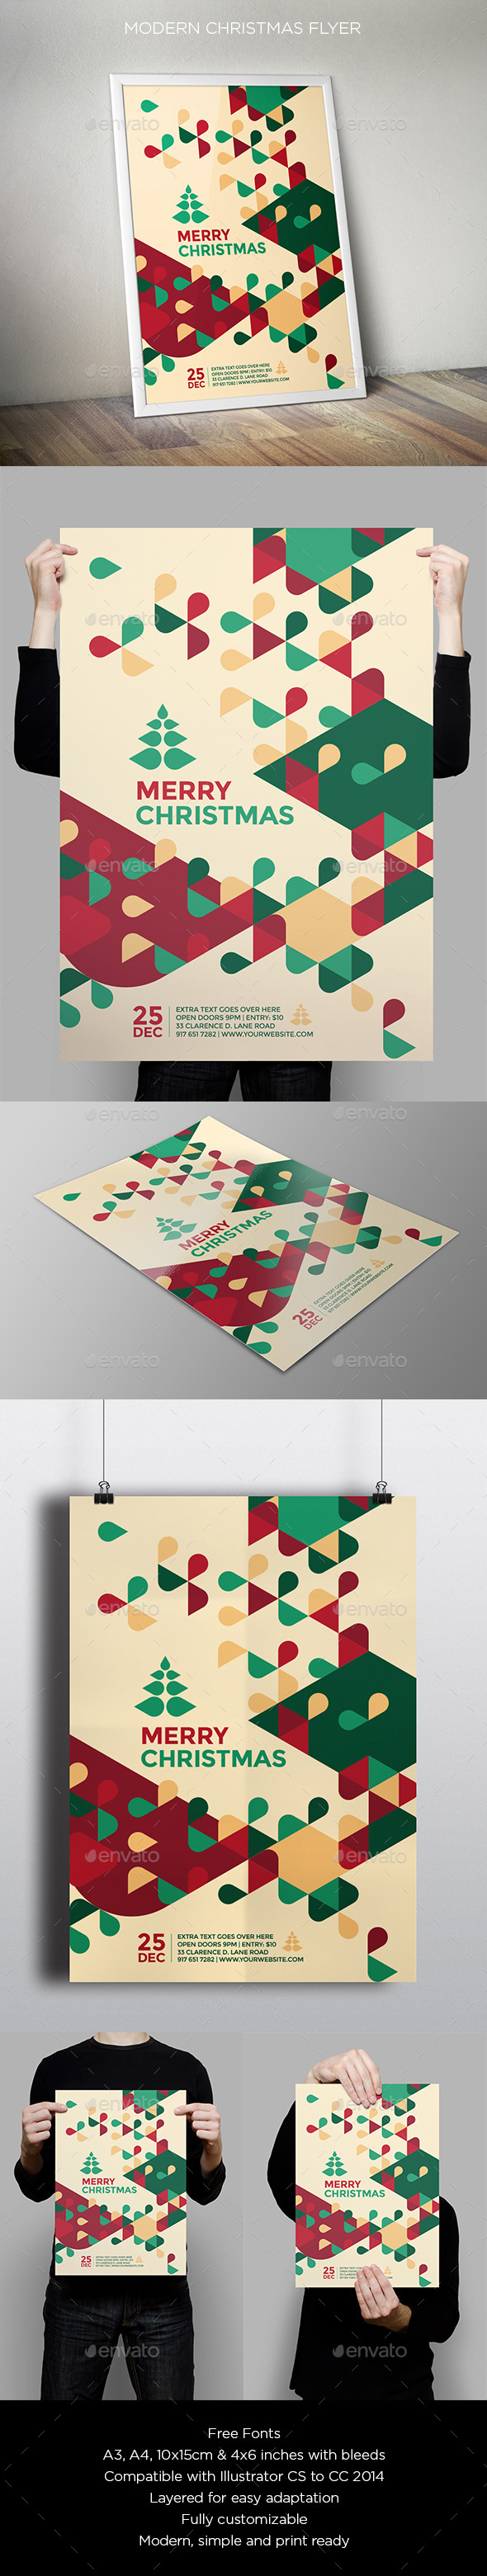 GraphicRiver Modern Christmas Flyer 9587884